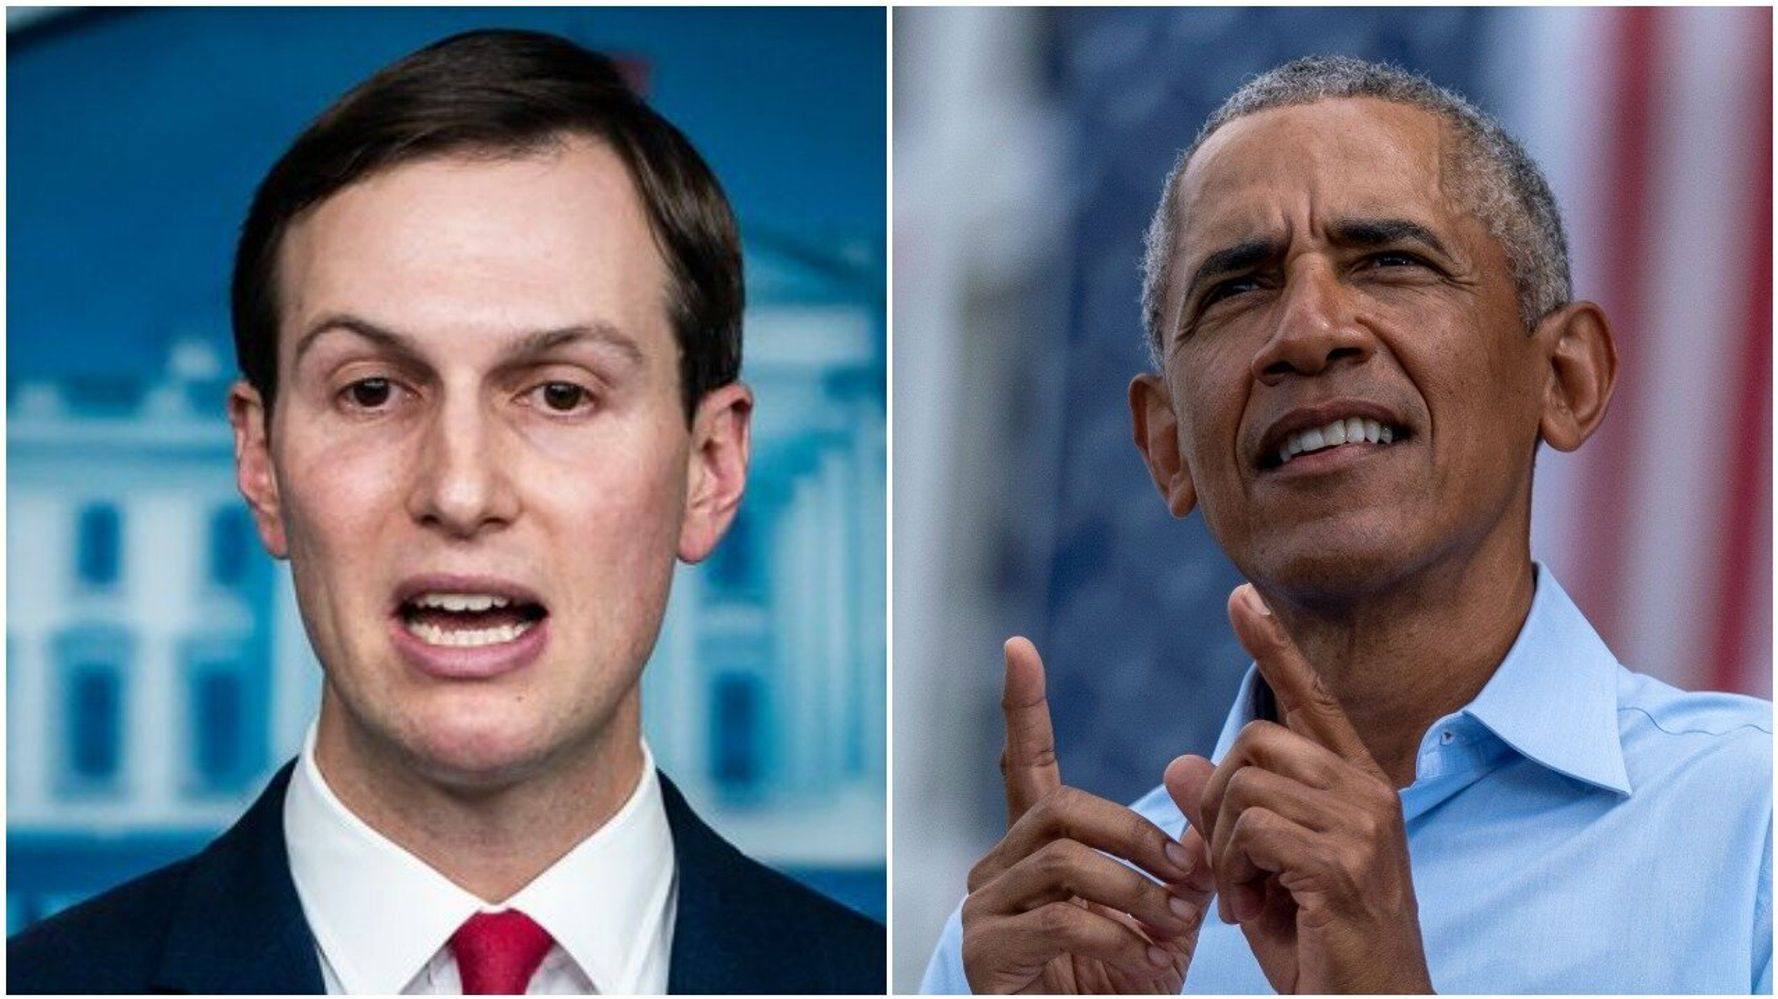 Barack Obama Slams Jared Kushner's Racist Remarks: 'Who Are These Folks?'